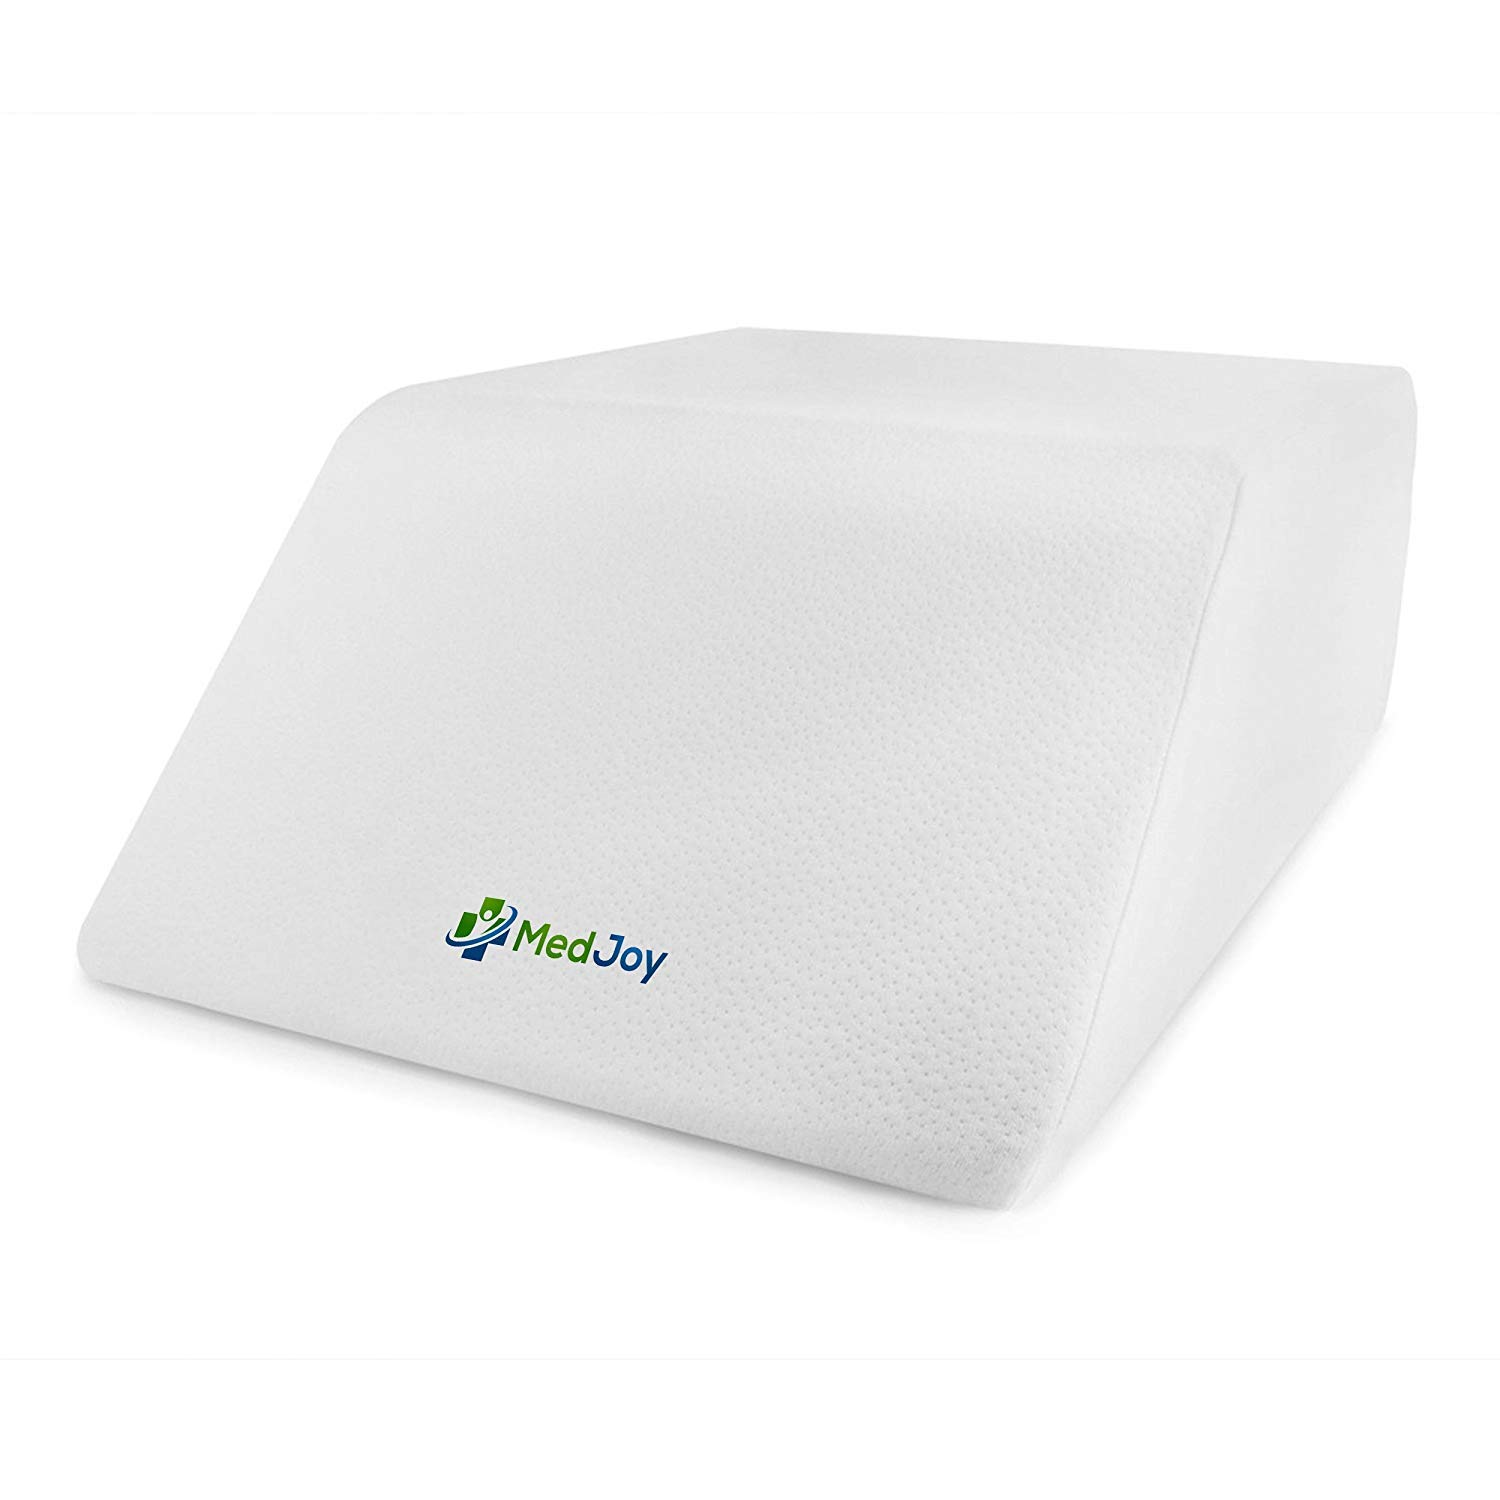 Amazon.com: Med Joy - Almohadas de espuma, normal: Home ...